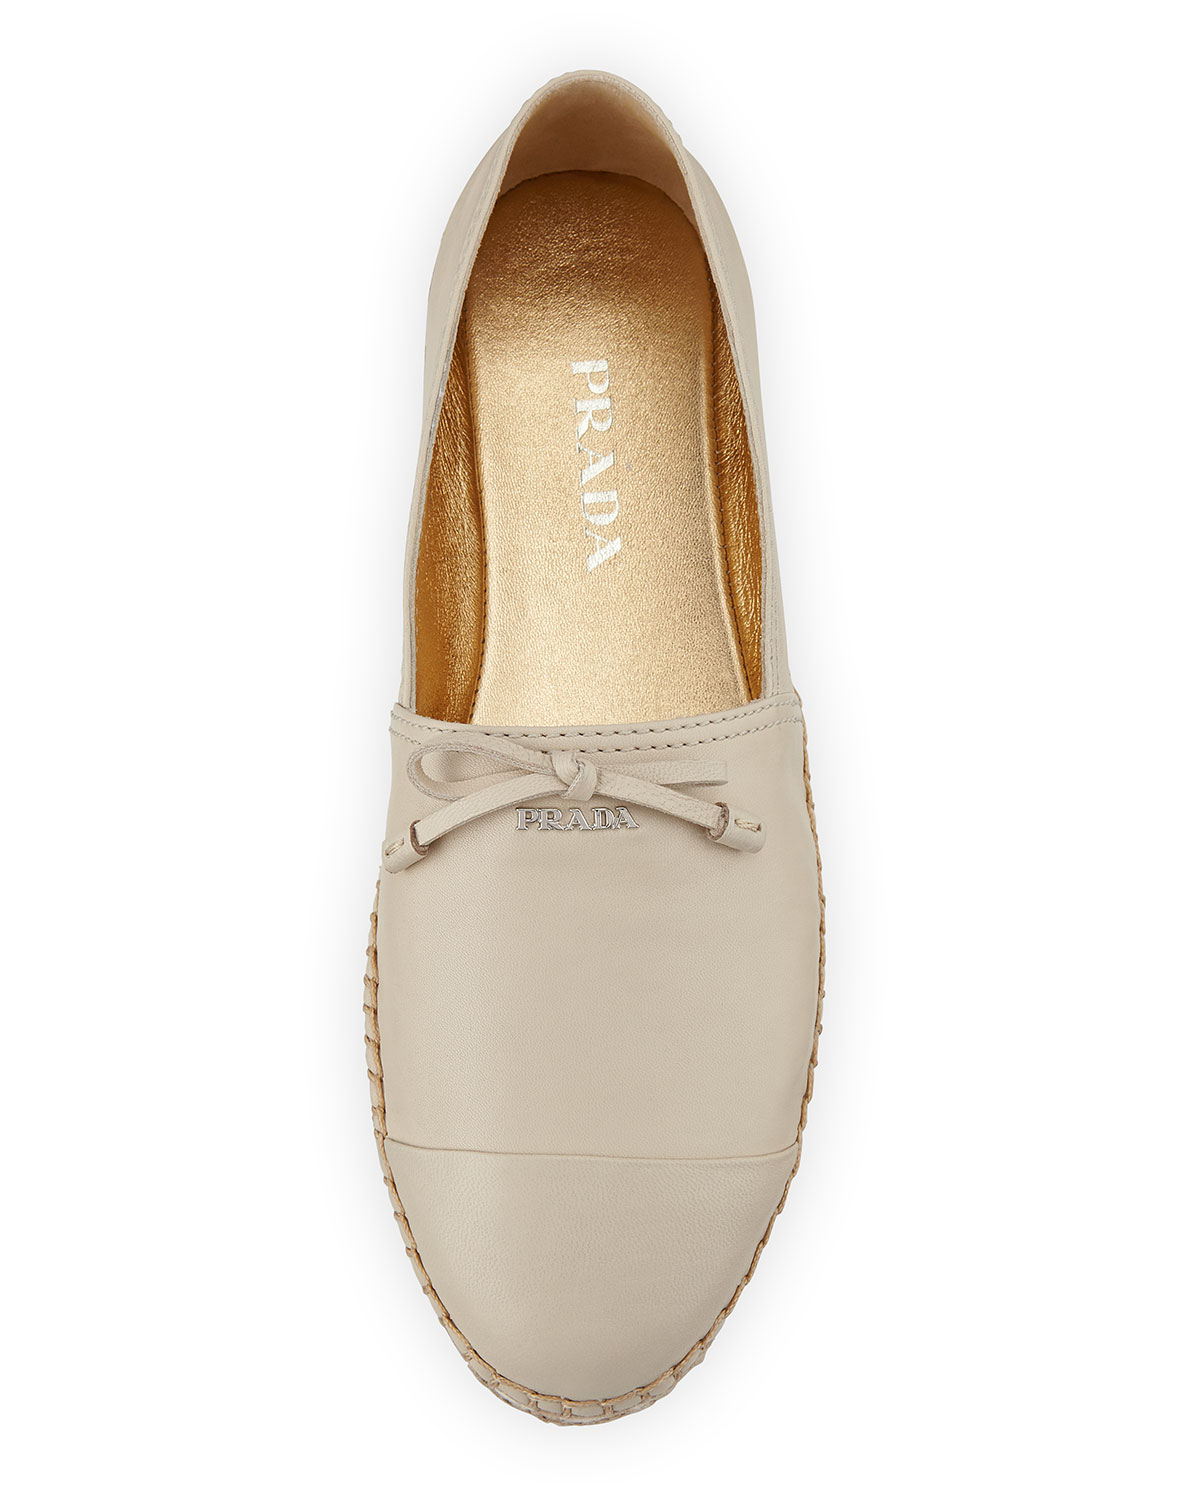 discount official Prada Leather Bow Espadrilles sale collections quality from china wholesale emuihu